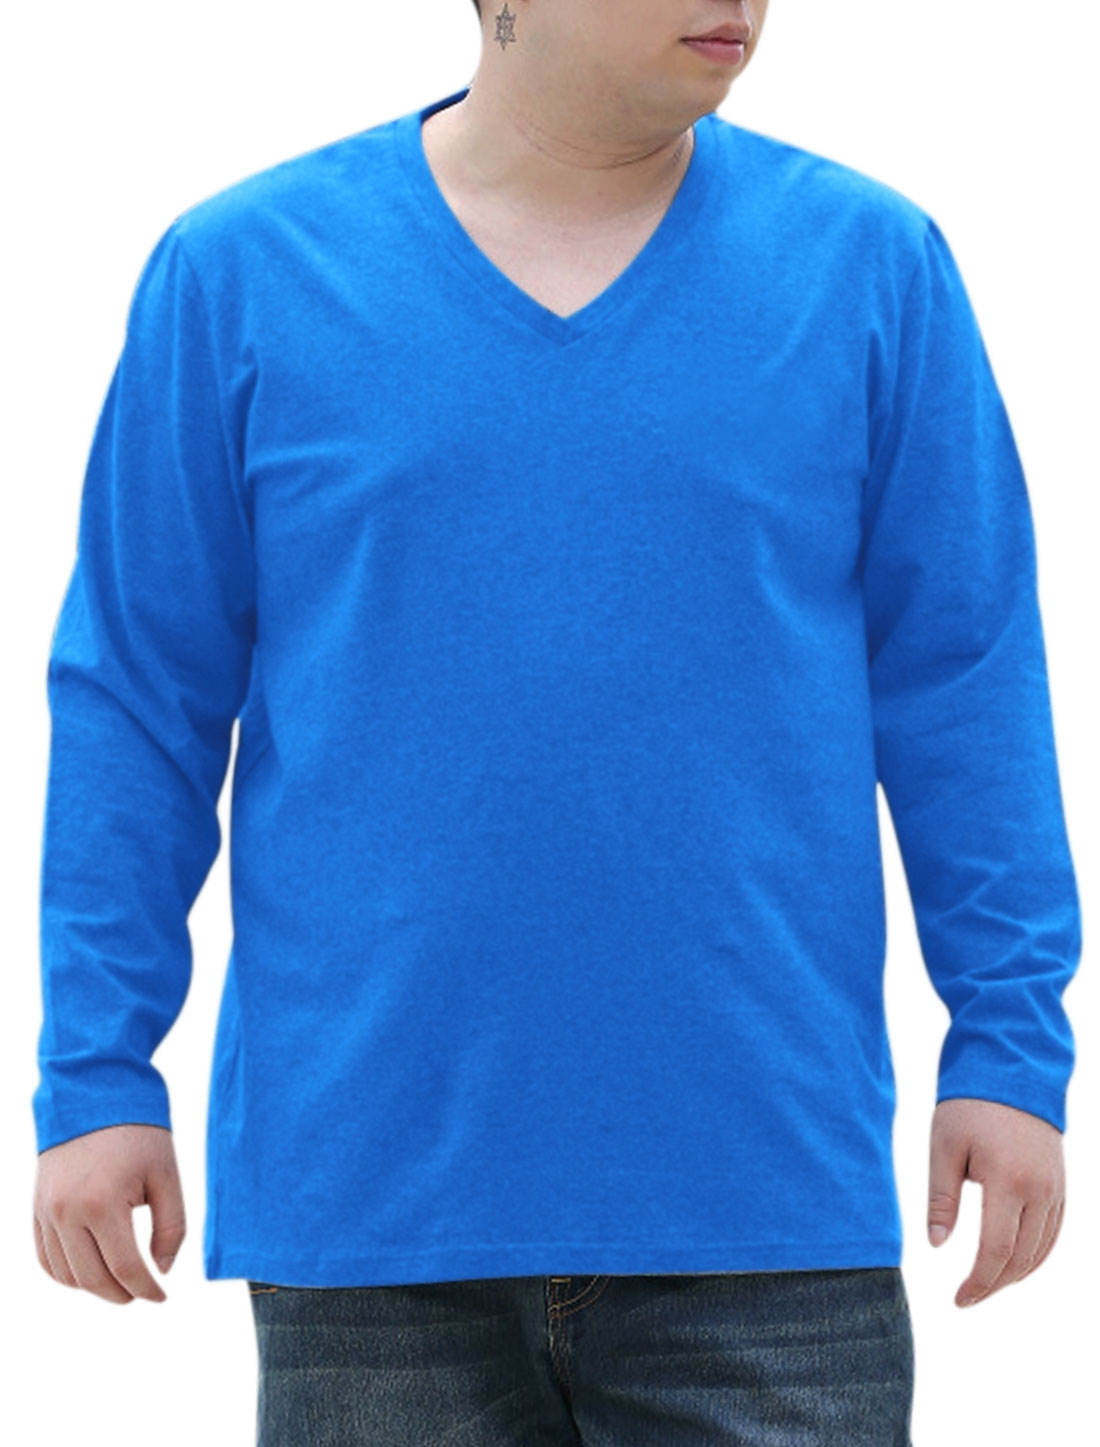 Men Soft Round Neck Pure Design Casual Big-Tall Tee Top Blue 2X Big